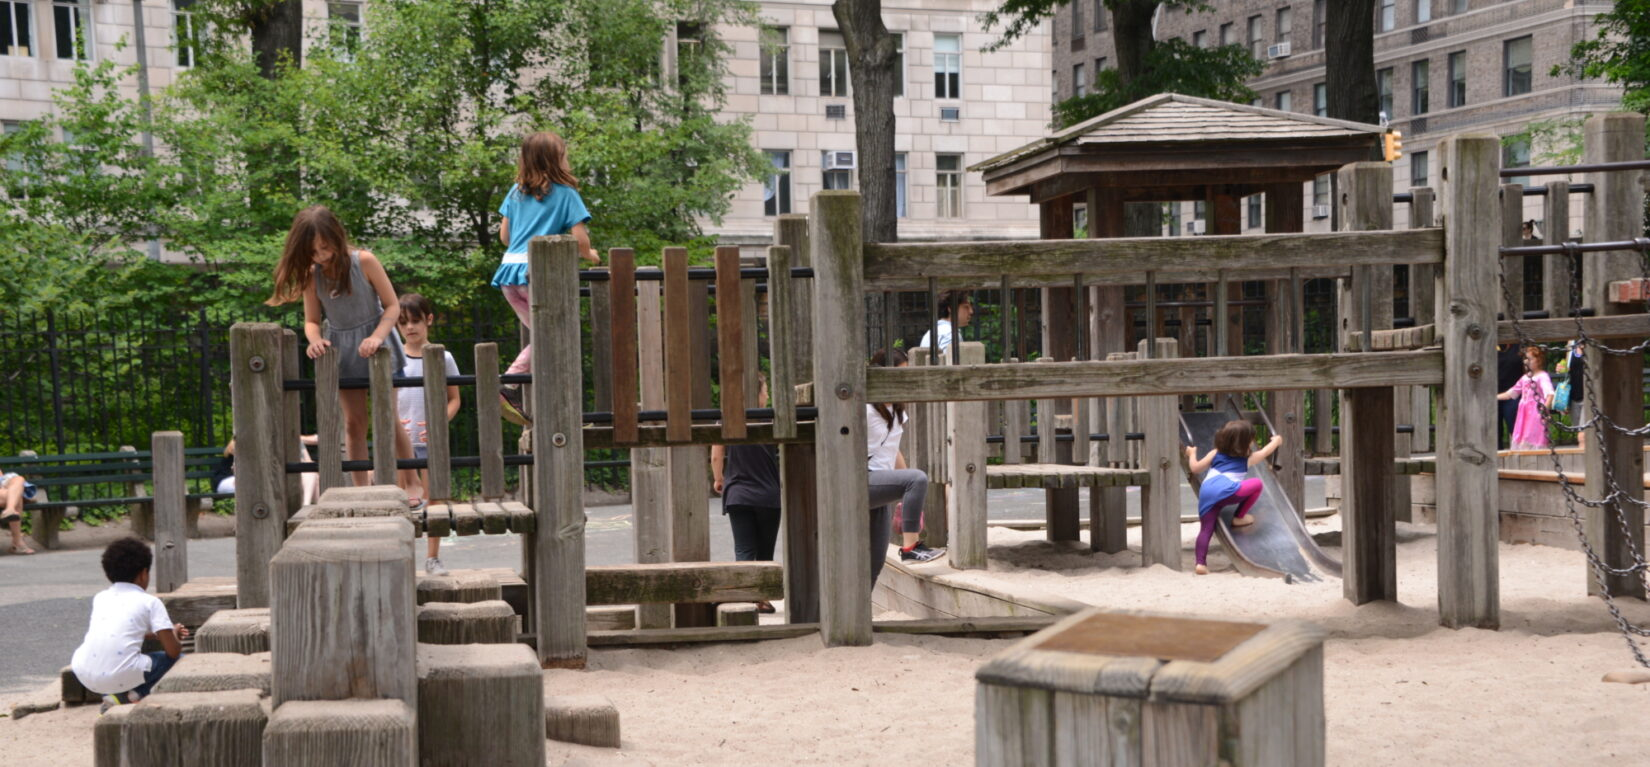 Small children clambor on the play structures